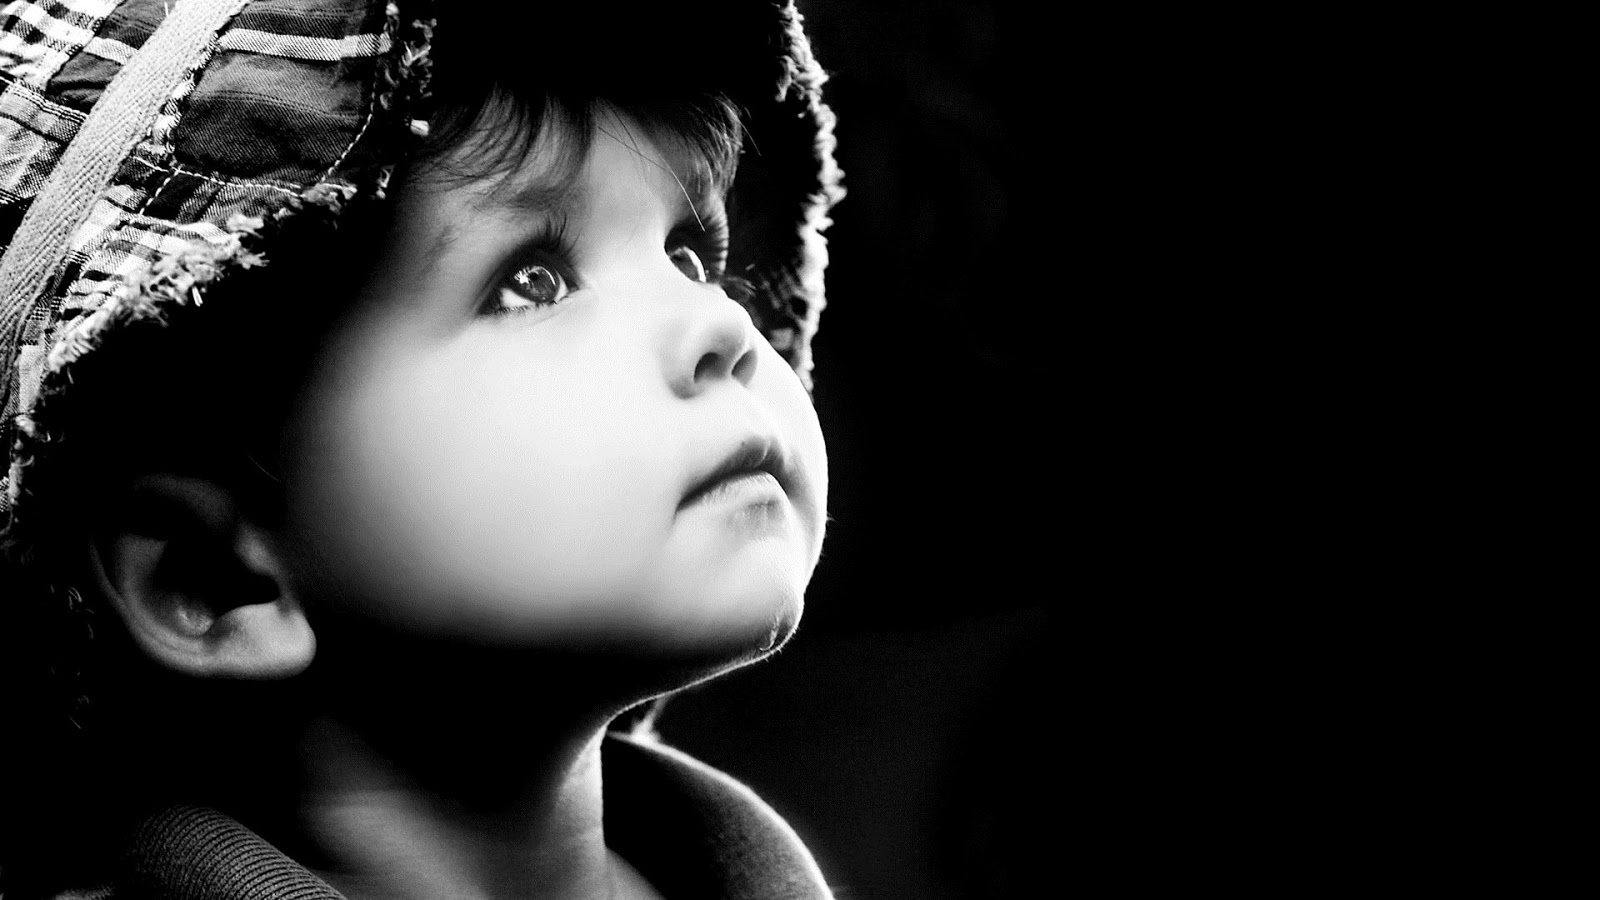 this sad boy hd wallpaper has recently added in stylish hd wallpapers 1045